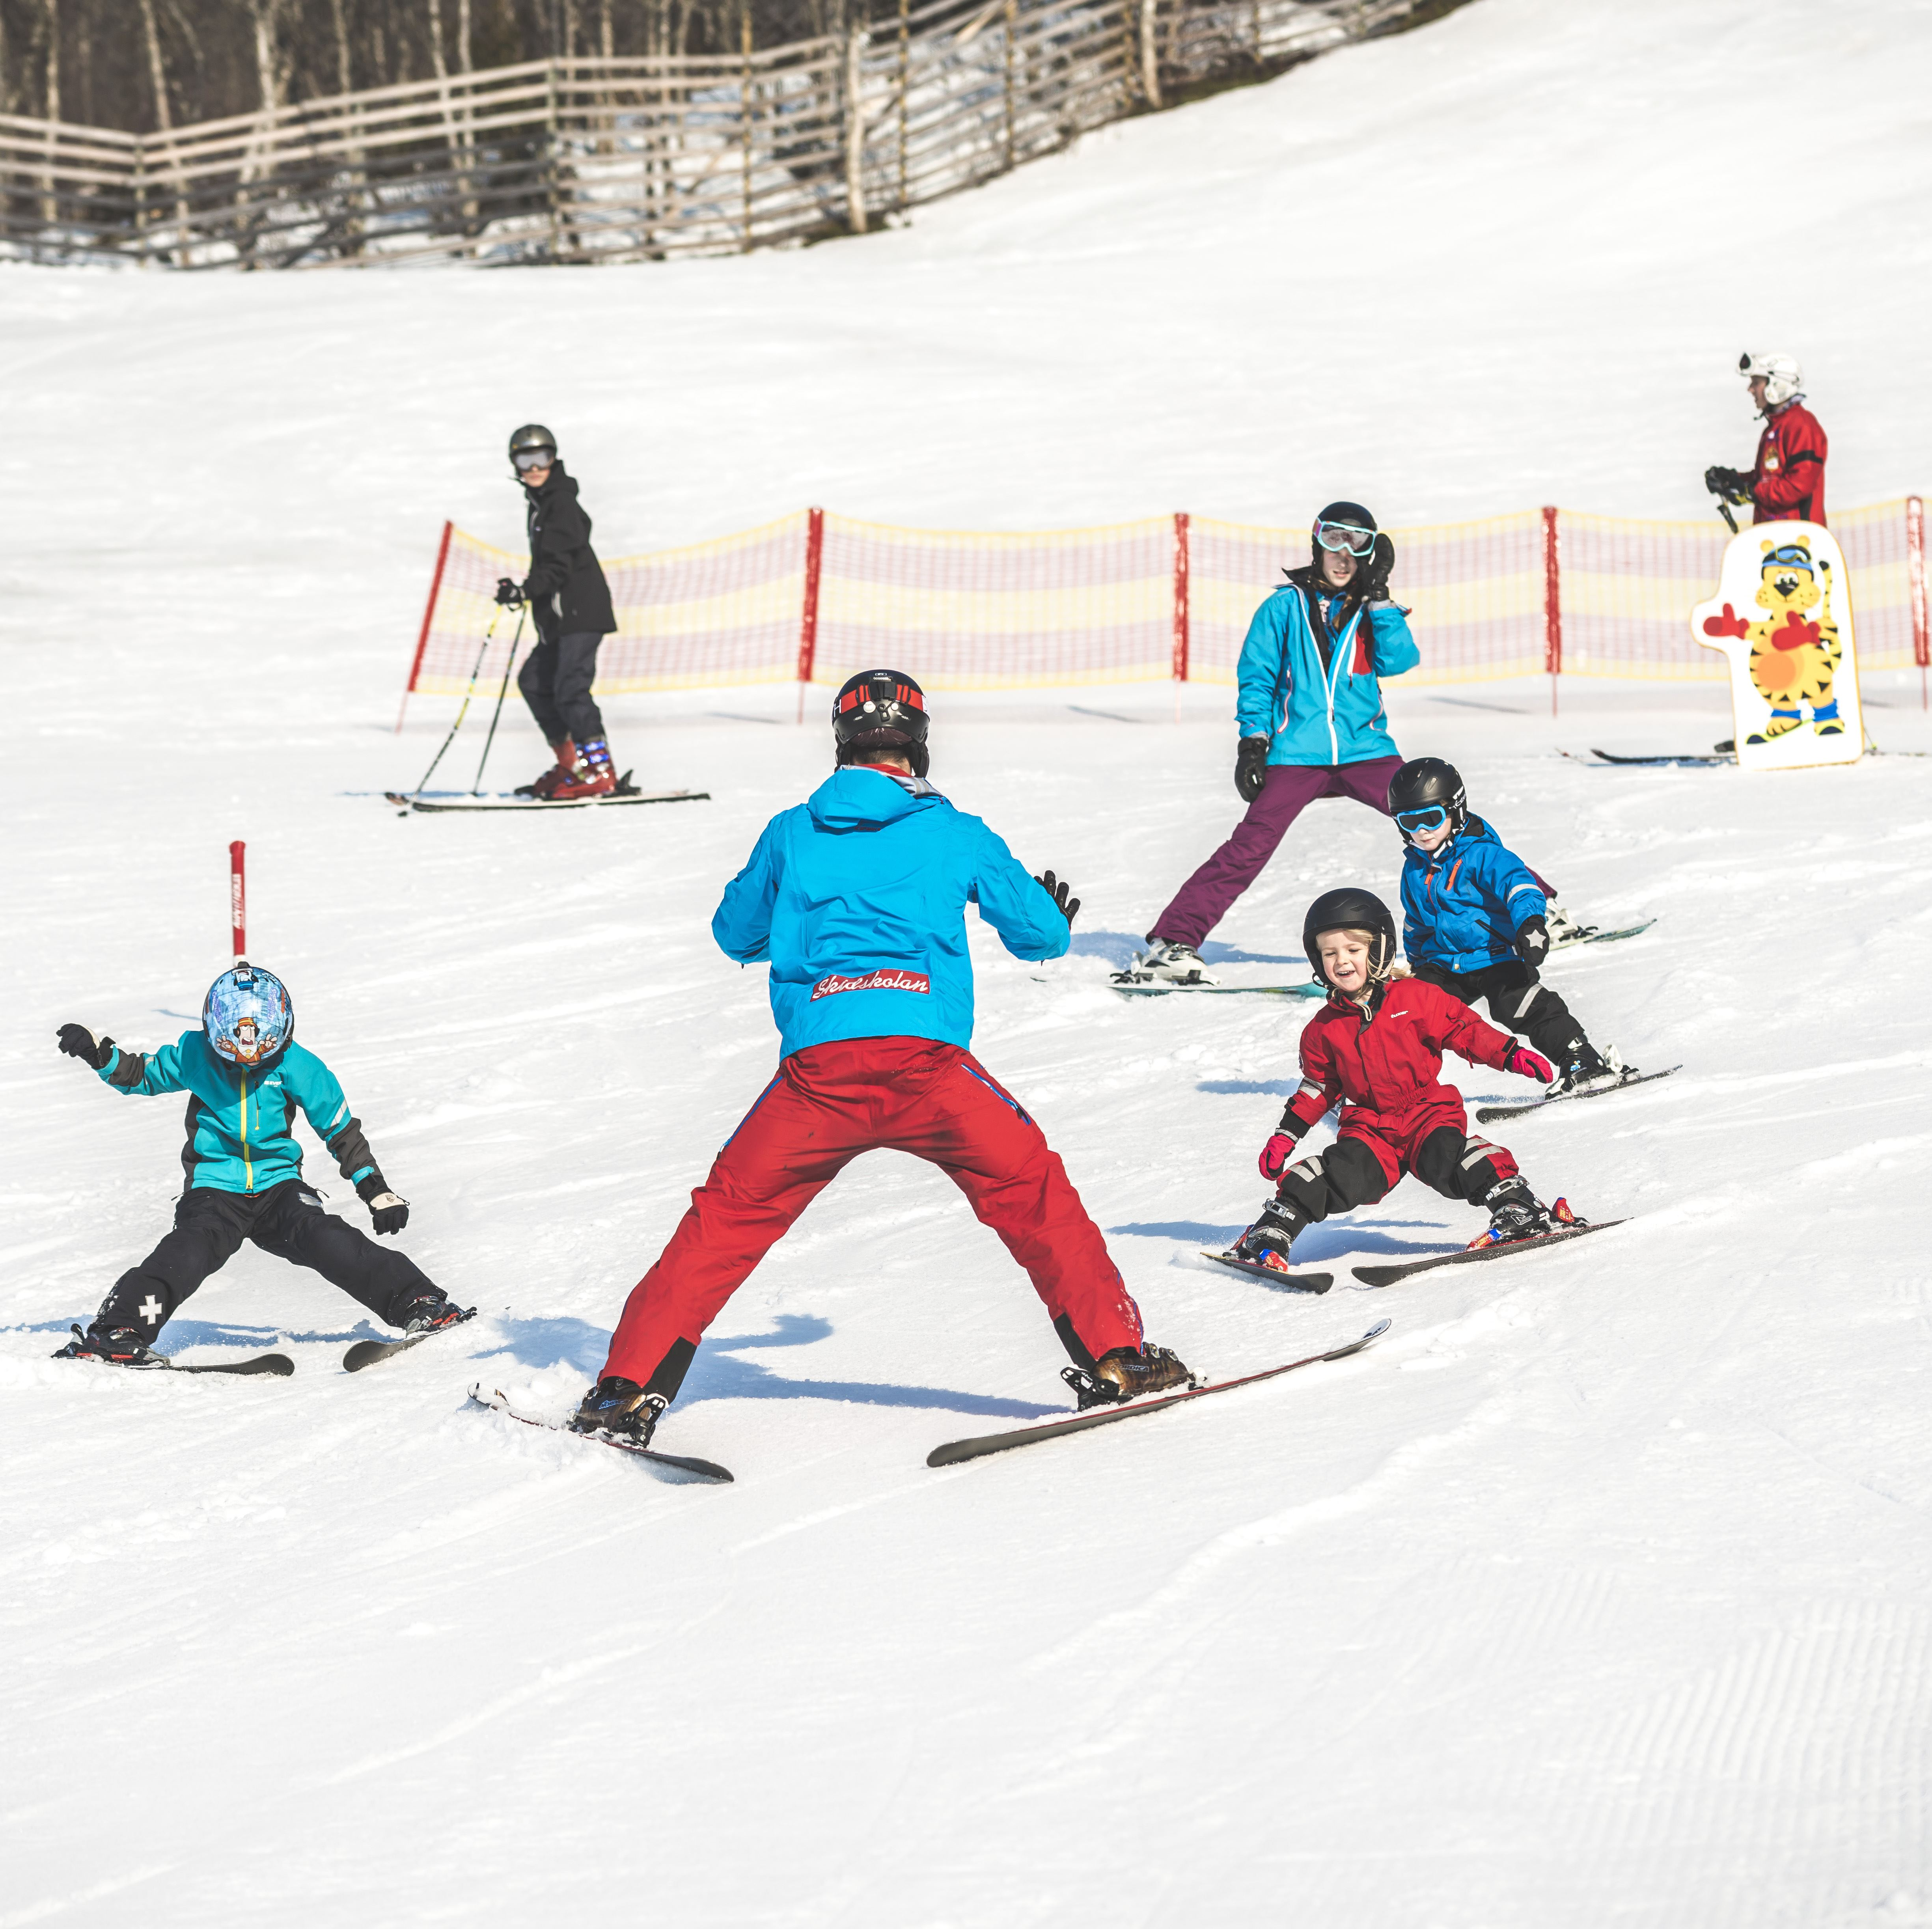 Book your spot at ski school - group lessons